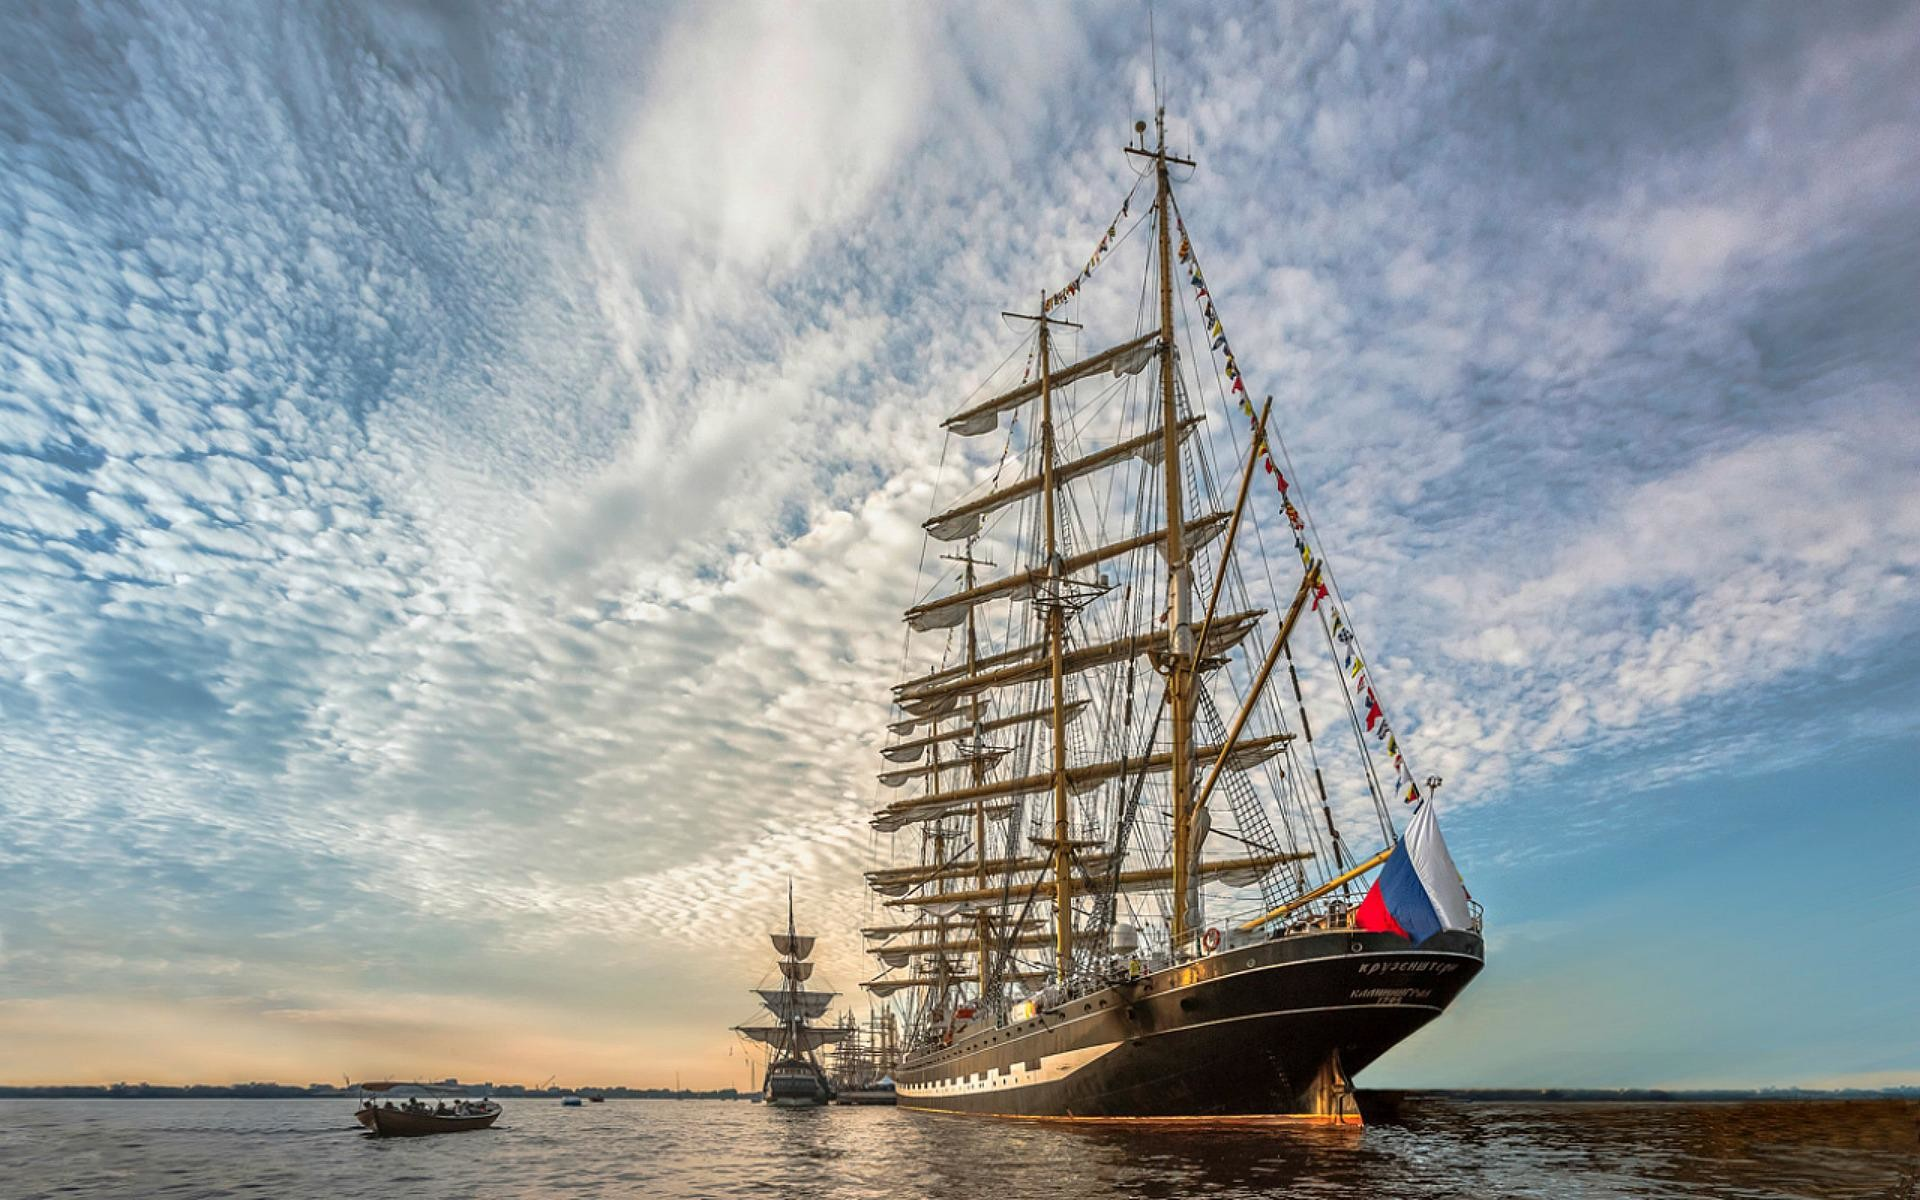 1920x1200 Tall Ship Wallpapers - Wallpaper Cave 120 Sailing Ship HD Wallpapers | Backgrounds - Wallpaper